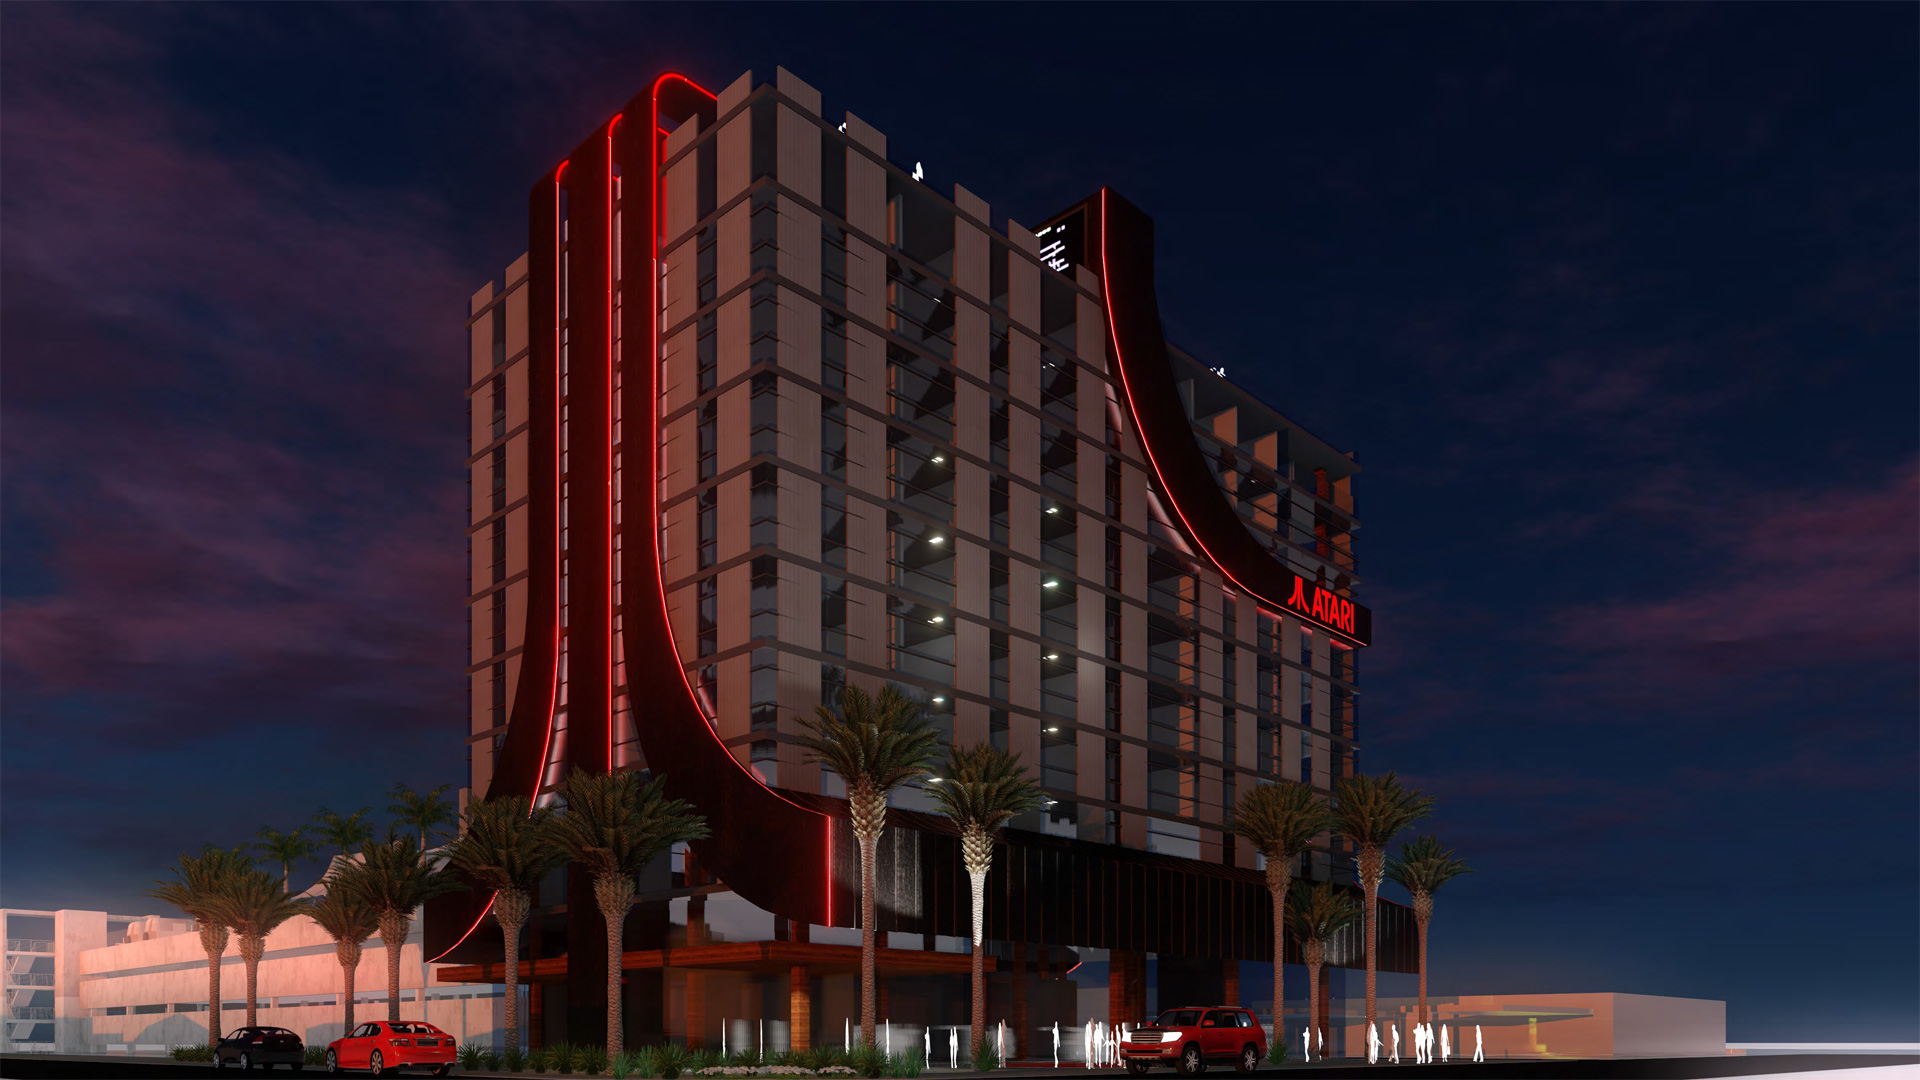 Atari to launch video game-themed hotels in 2020